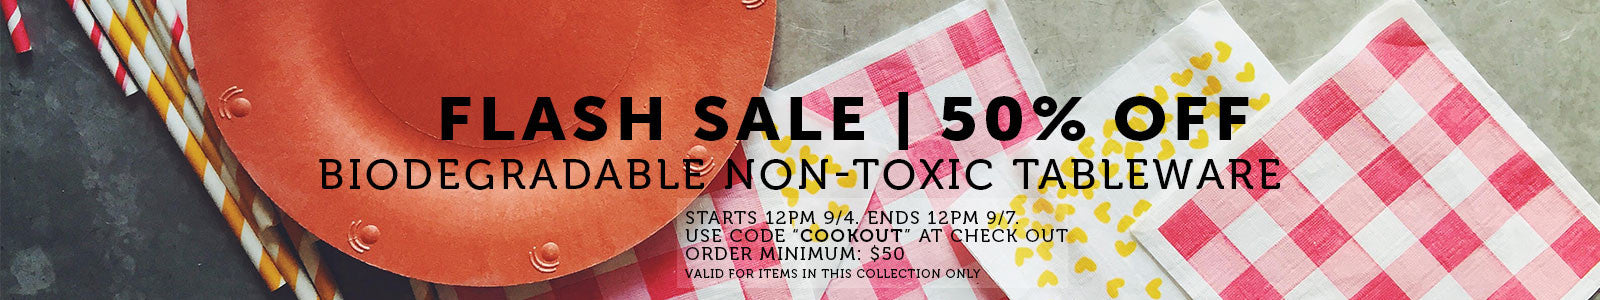 Flash Sale Collection for Labor Day Weekend